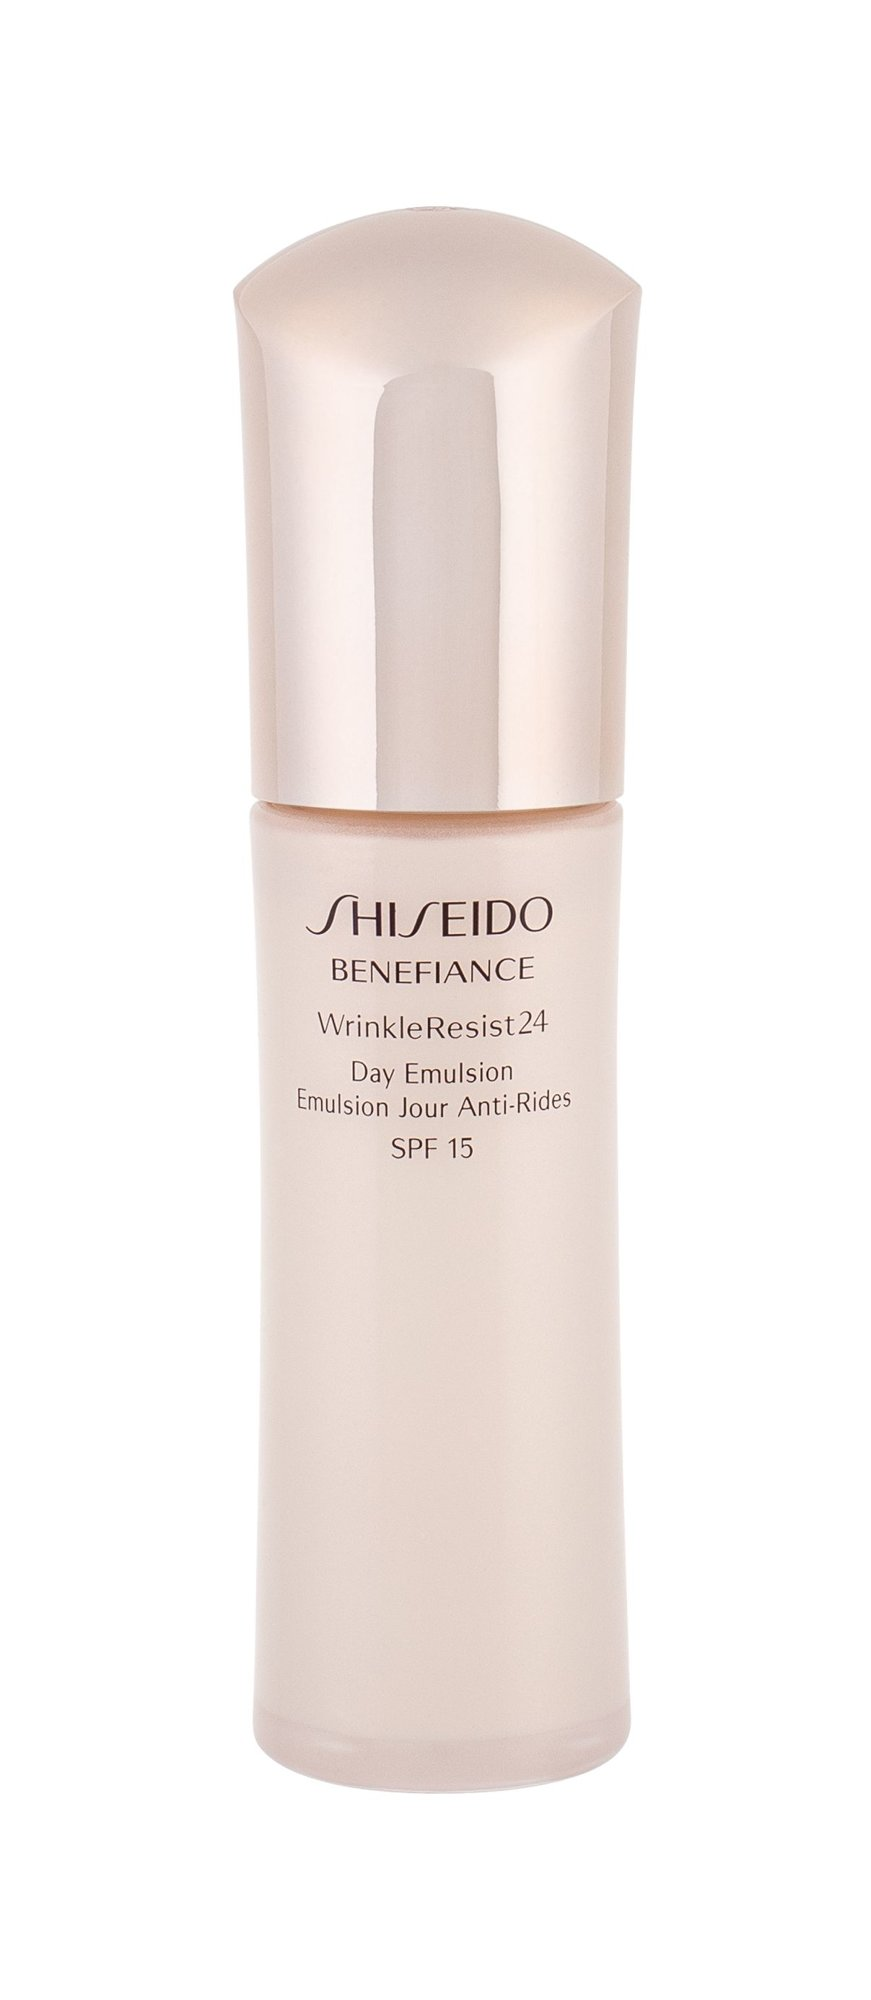 Shiseido Benefiance Wrinkle Resist 24 Cosmetic 75ml